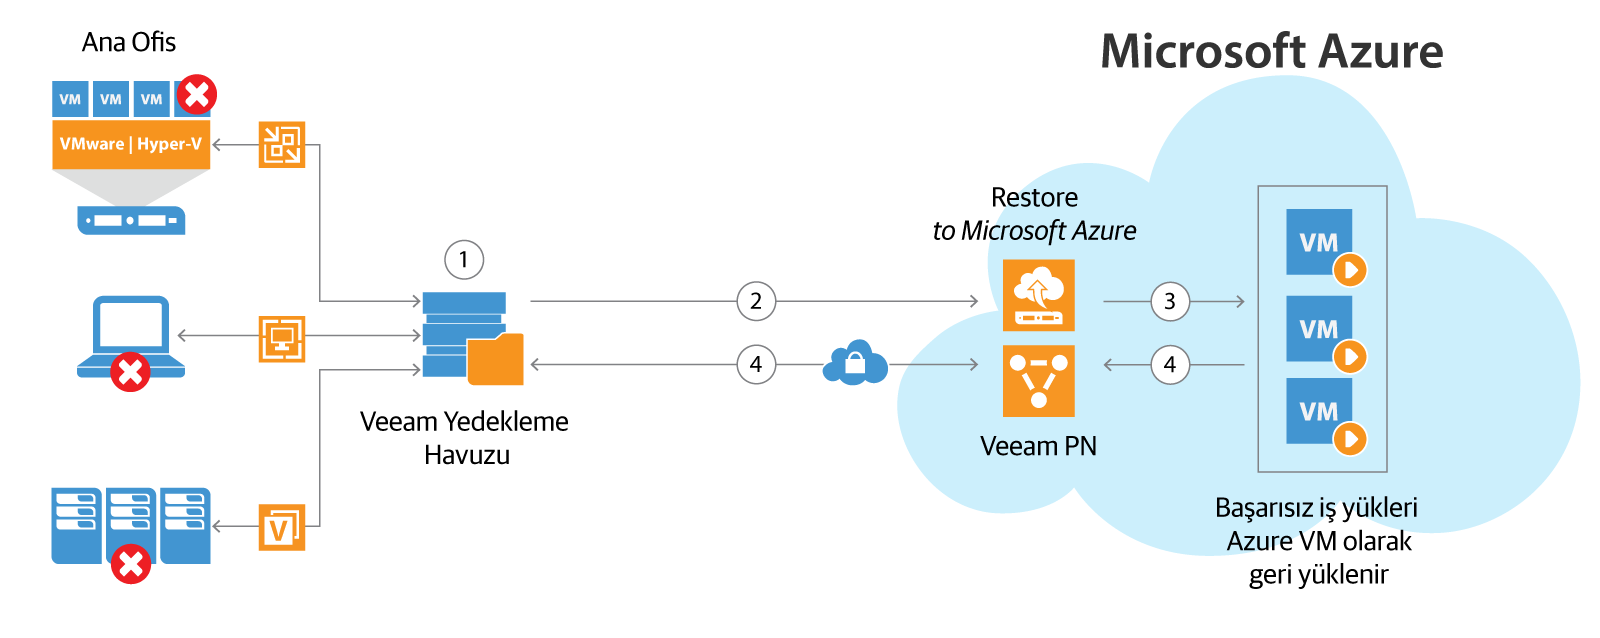 veeam_pn_direct_restore_to_azure_tr.png